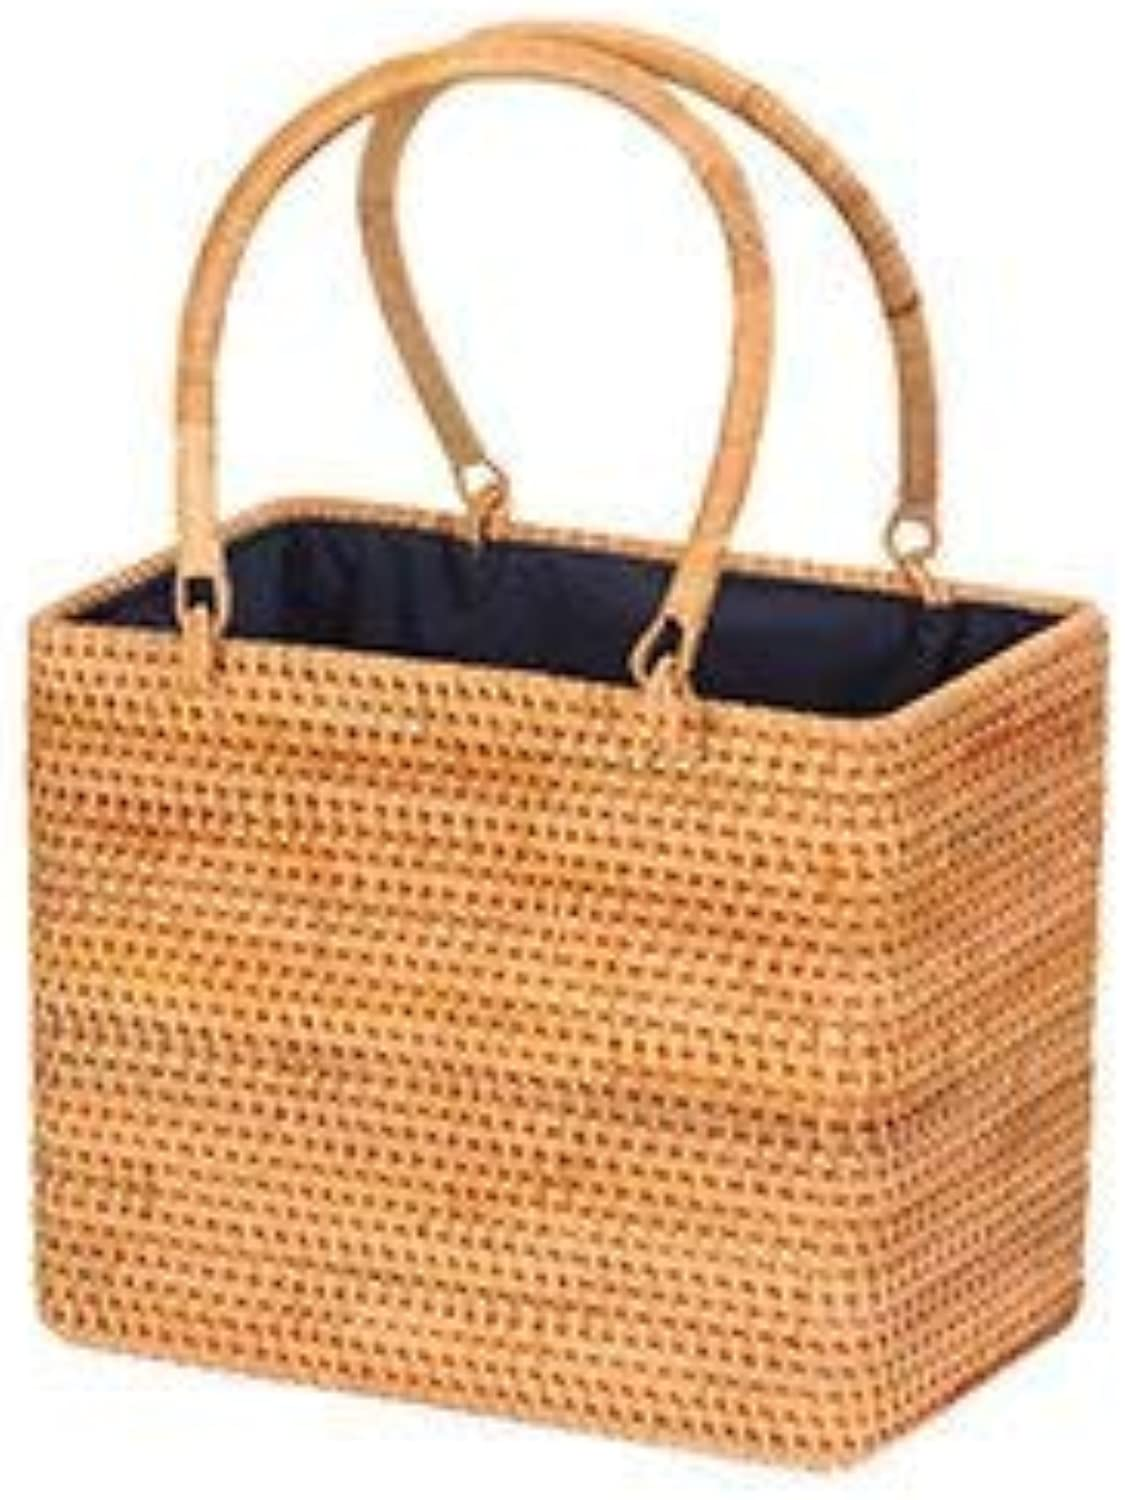 Bloomerang Summer Bali Handmade Straw Bag Hollow Top-Handle Women Handbag Bohemian Rattan Beach Bag Vintage Woven Women Tote Bolsa New color Khaki-Big